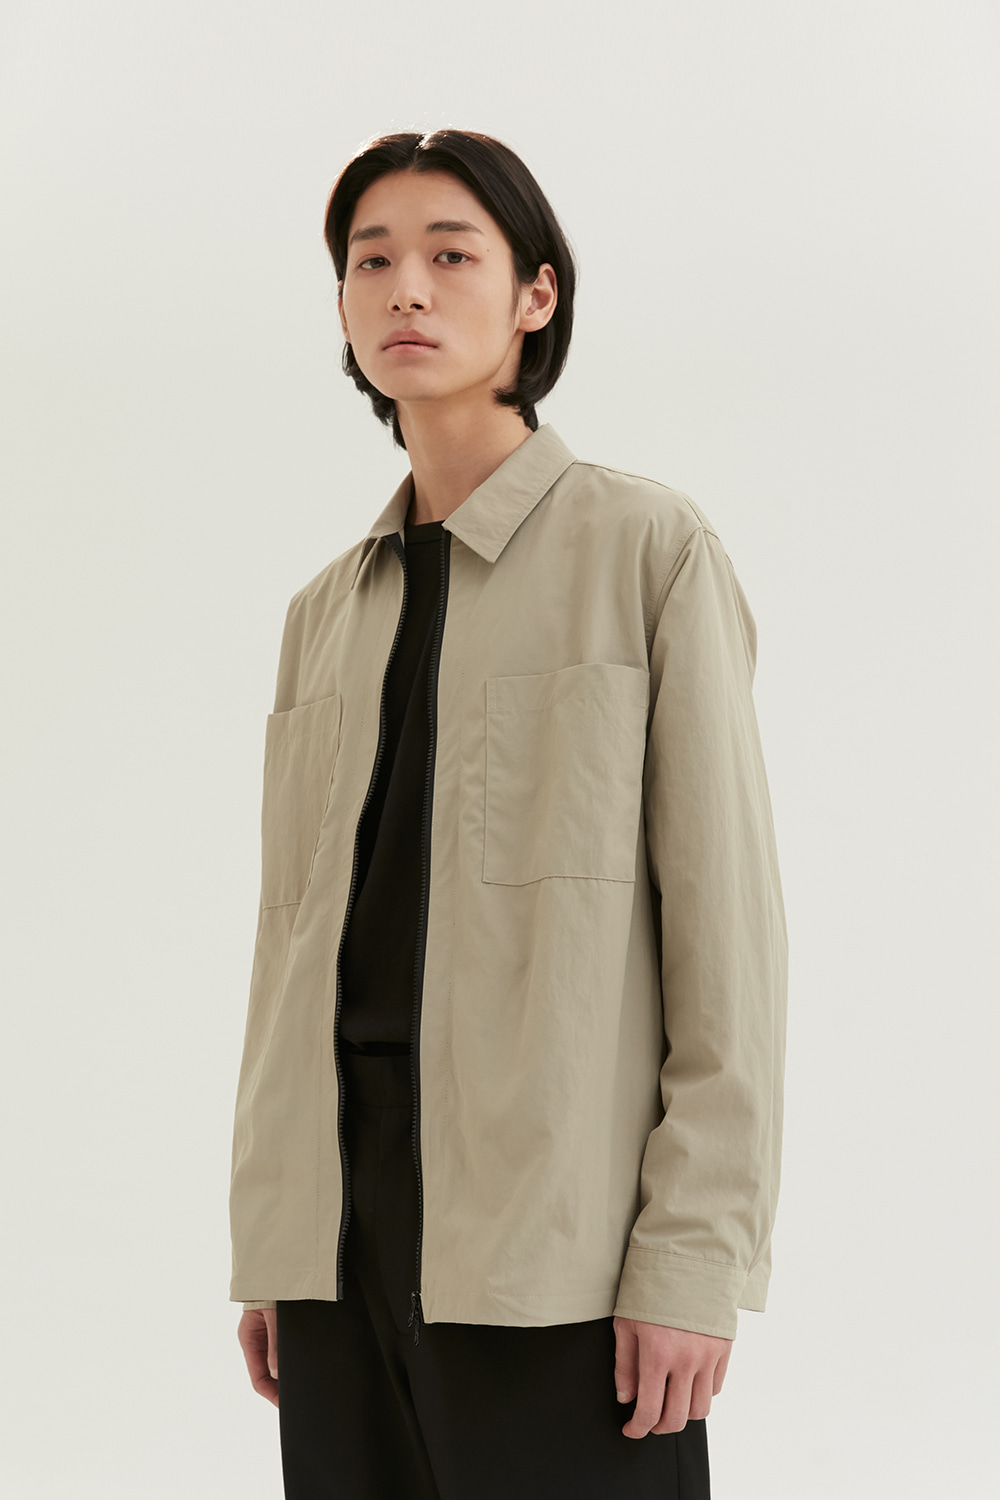 Zip Up Shirts Men [Dark Beige] -50%